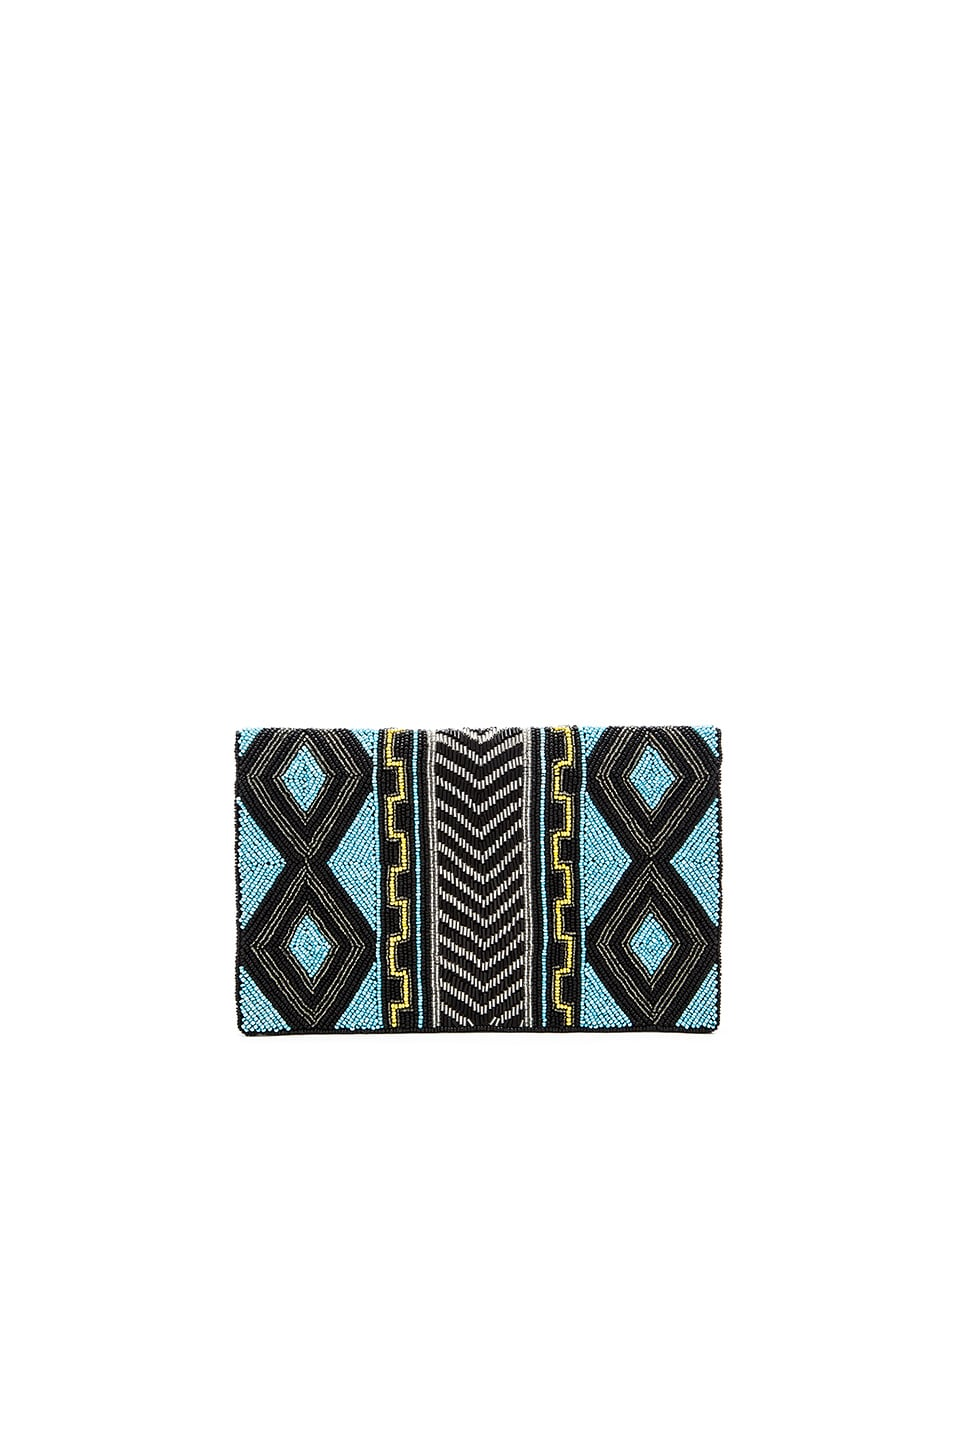 From St Xavier Akua Clutch in Black & Turquoise